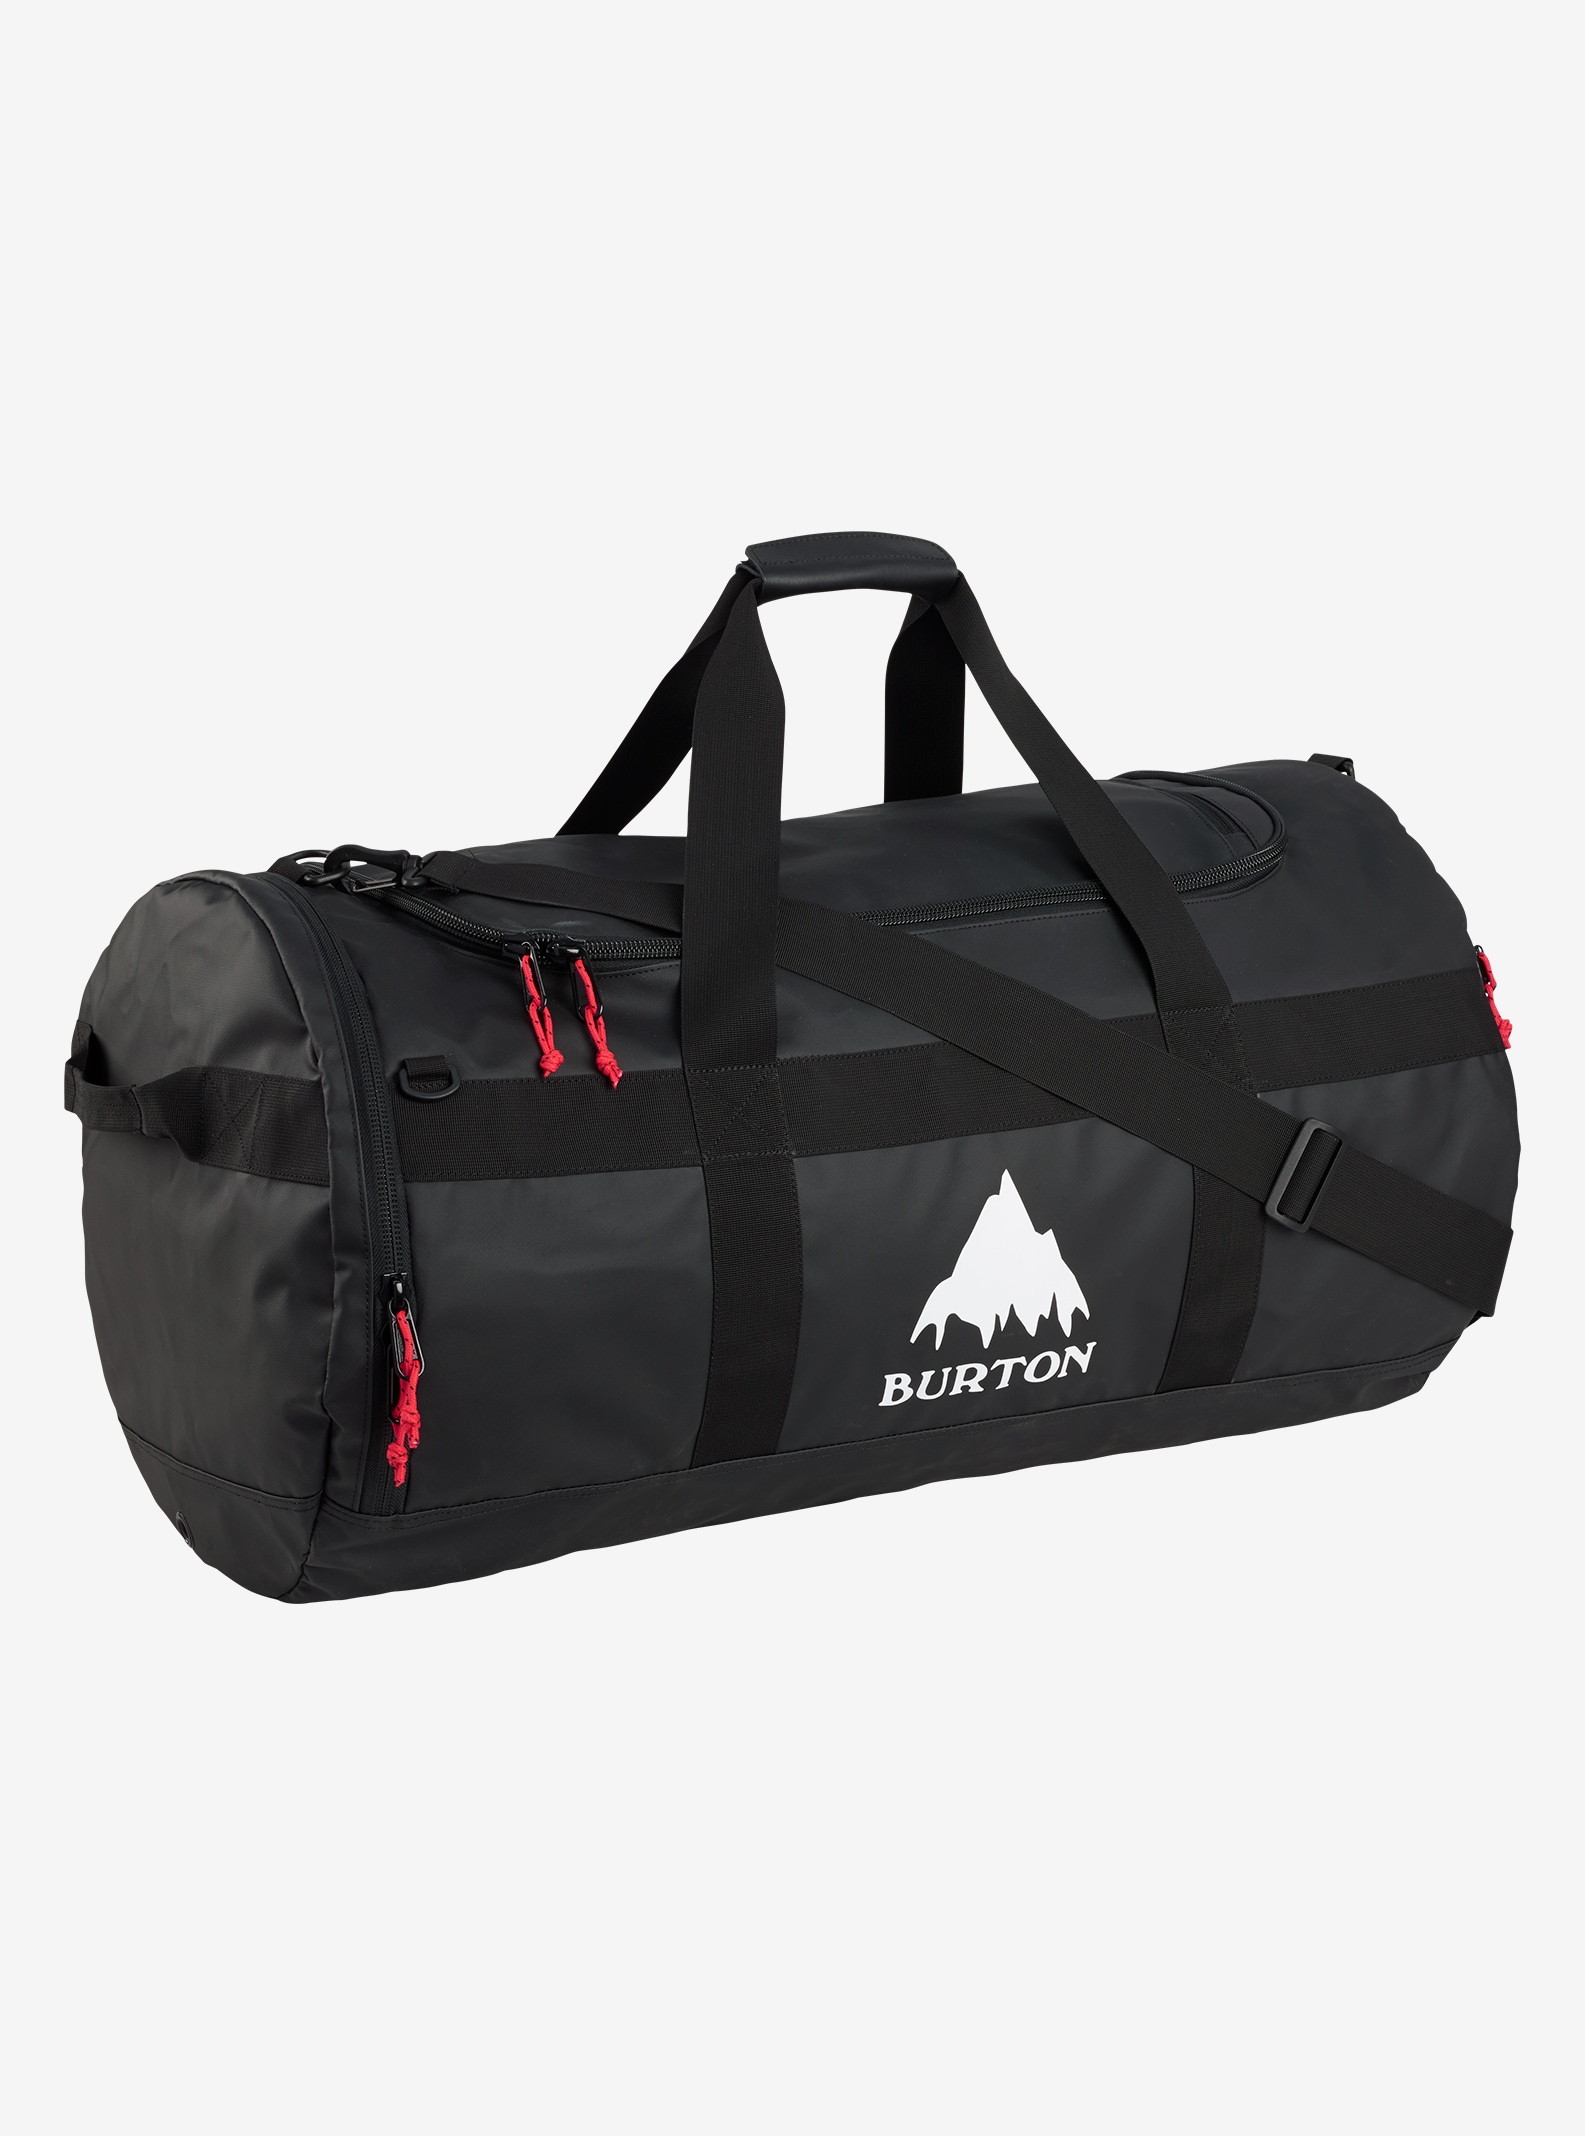 Burton Backhill Duffel Bag Large 90L shown in True Black Tarp